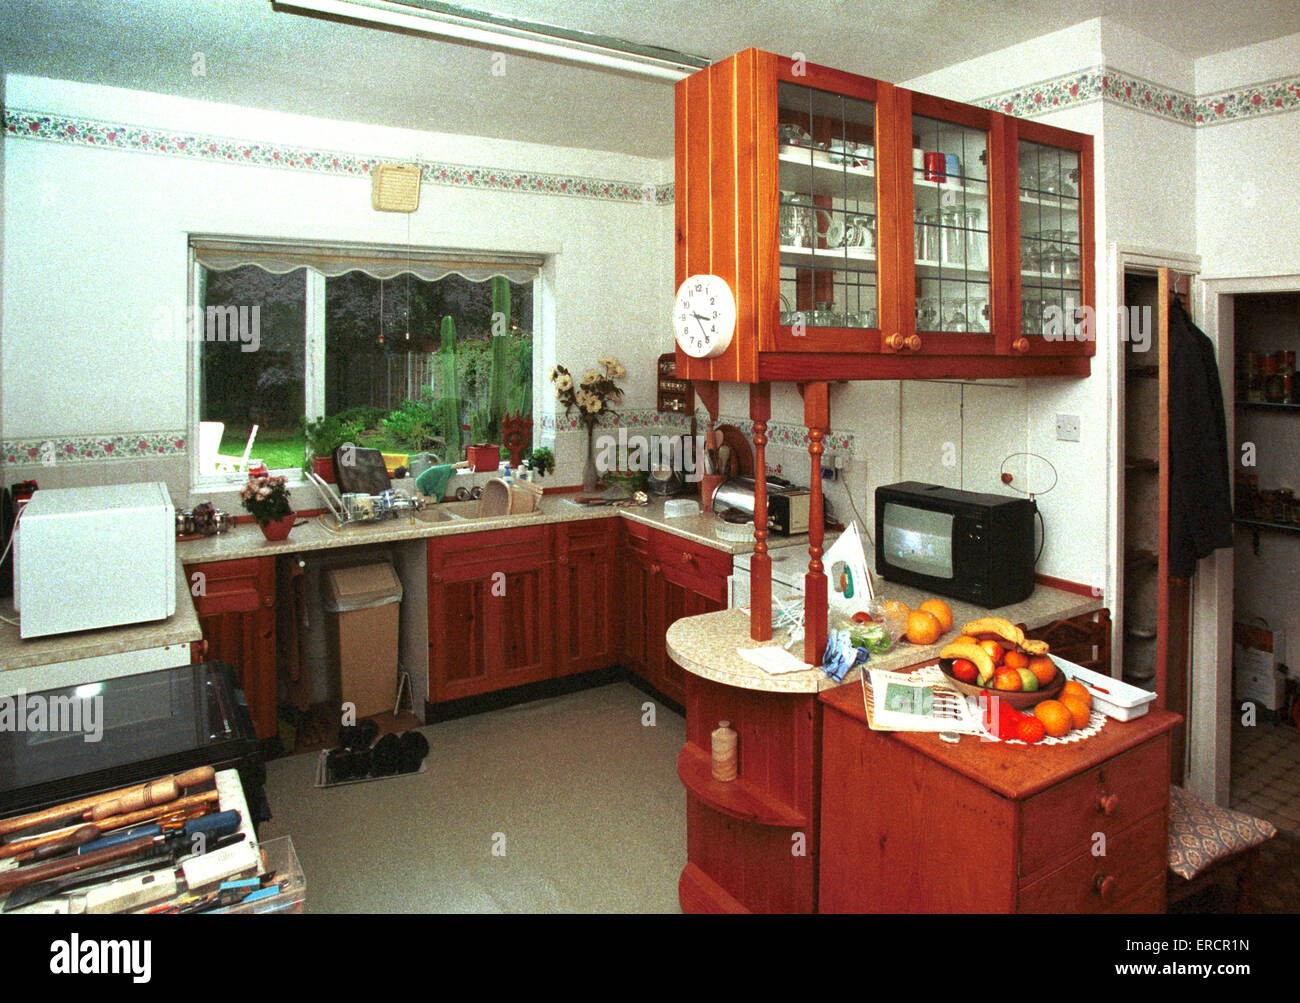 home improvements, old fashioned kitchen with pine cabinets in need of modernisation Stock Photo